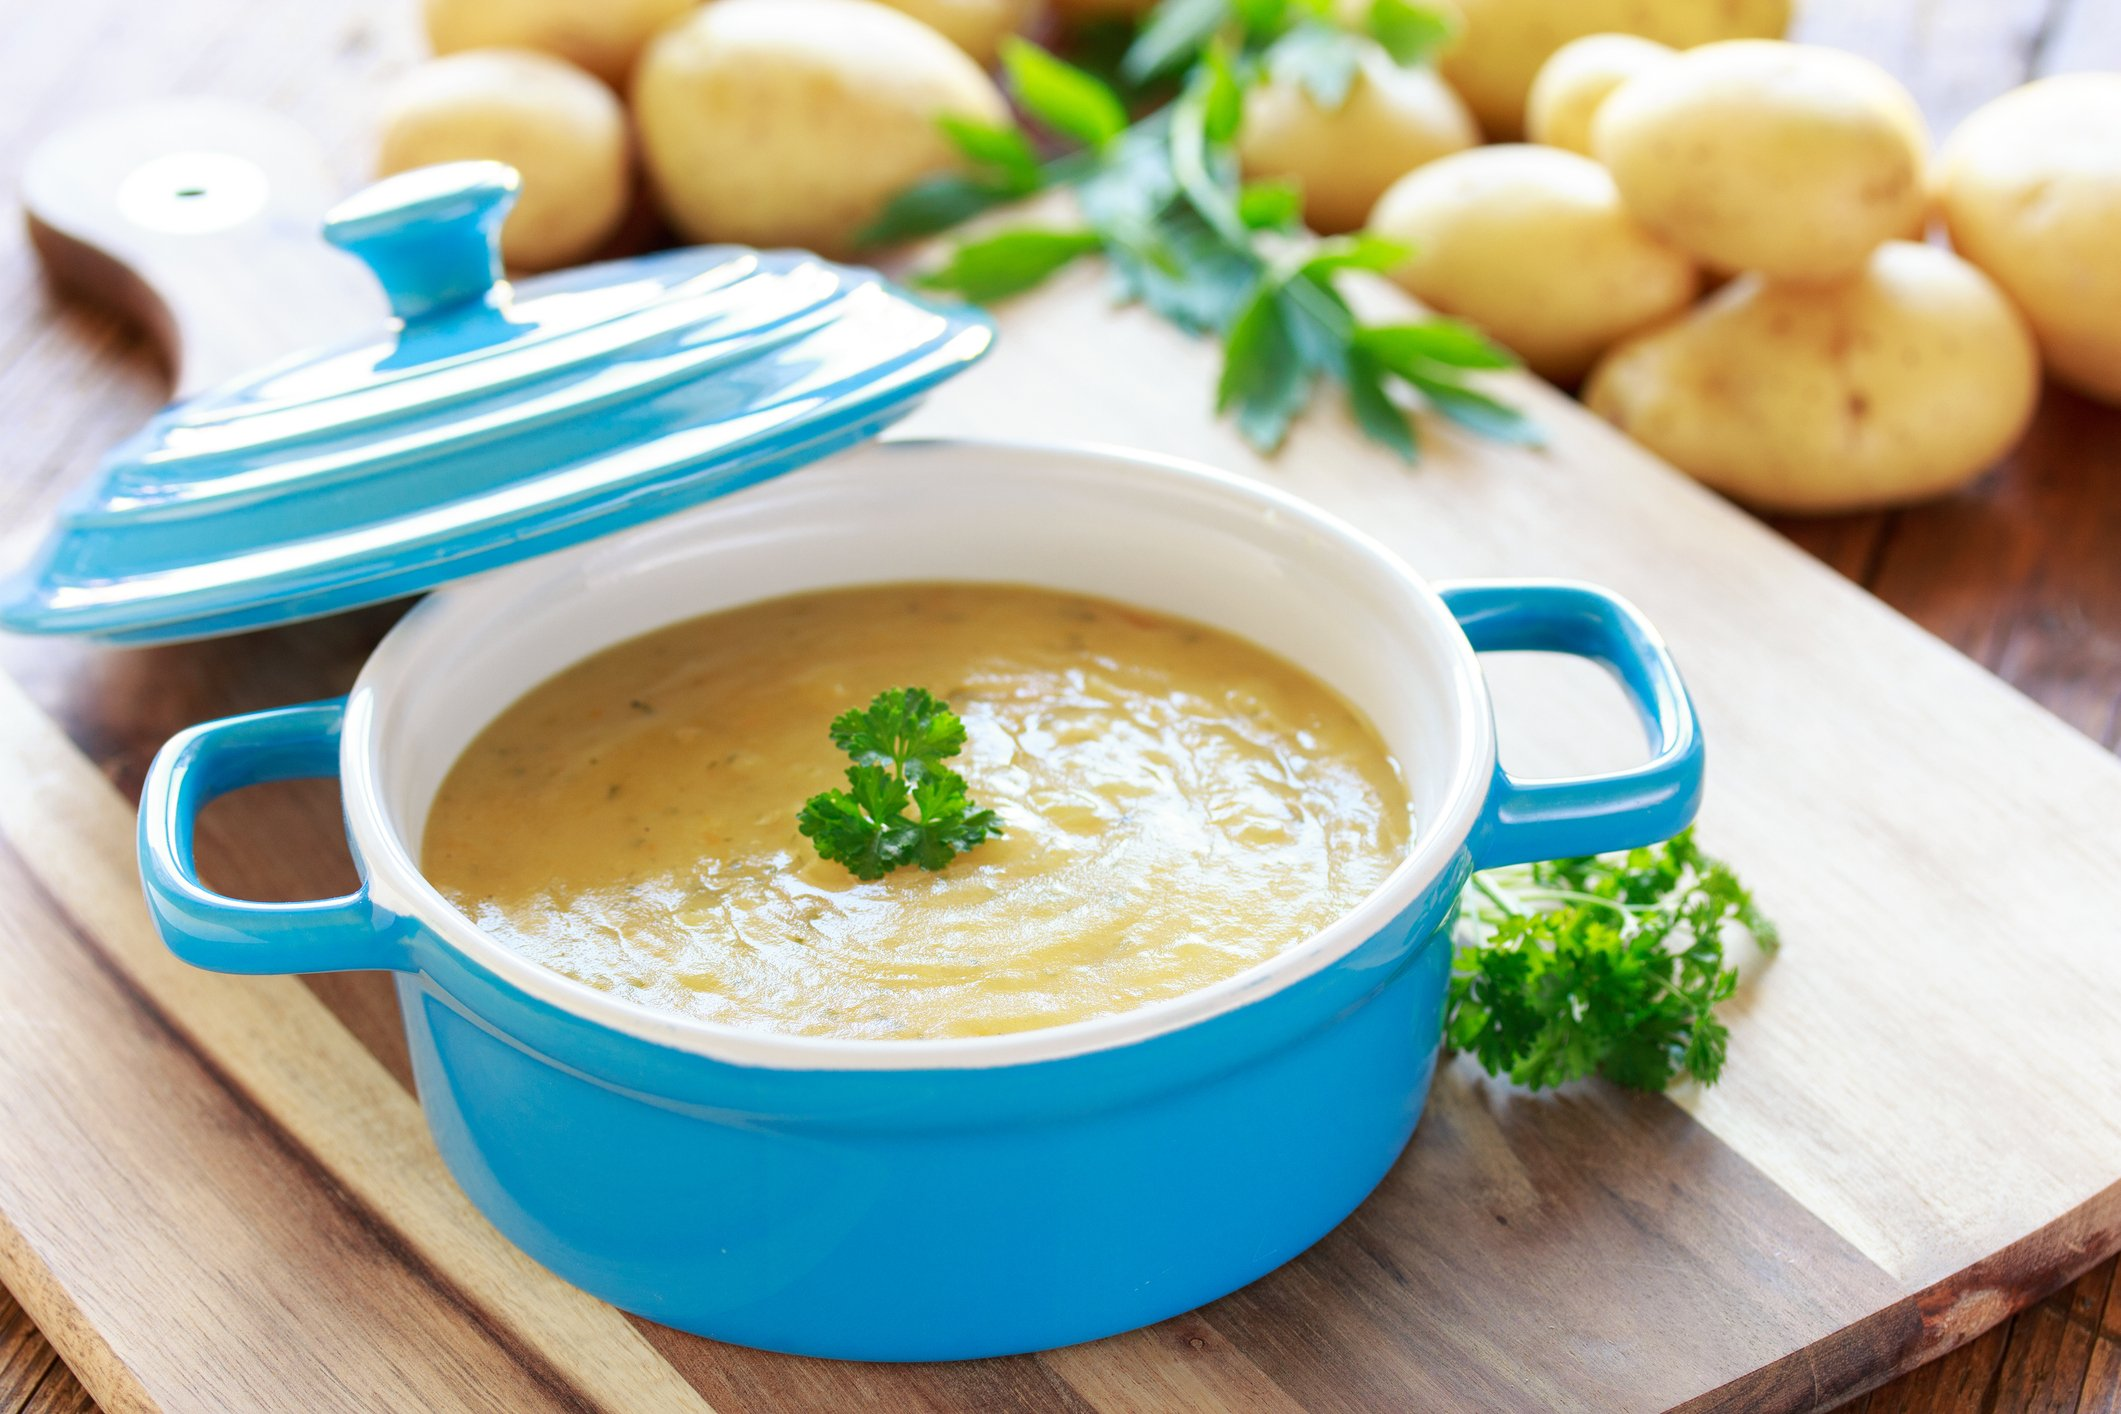 You can garnish your potato soup with herbs like parsley or dill. (iStock Photo)